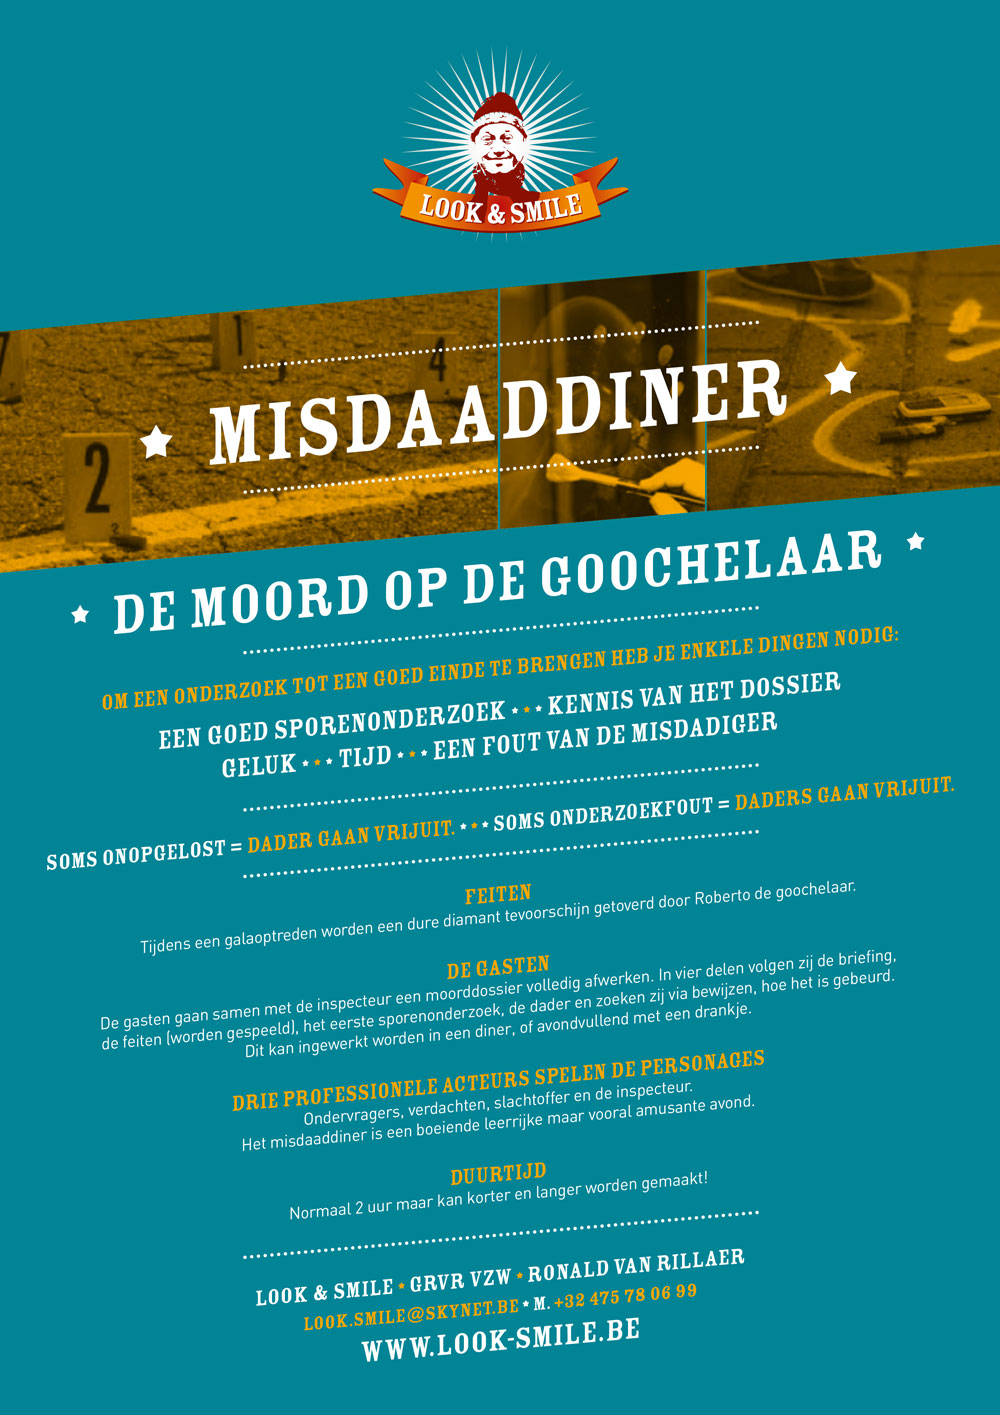 Look_Smile-theater-misdaaddiner